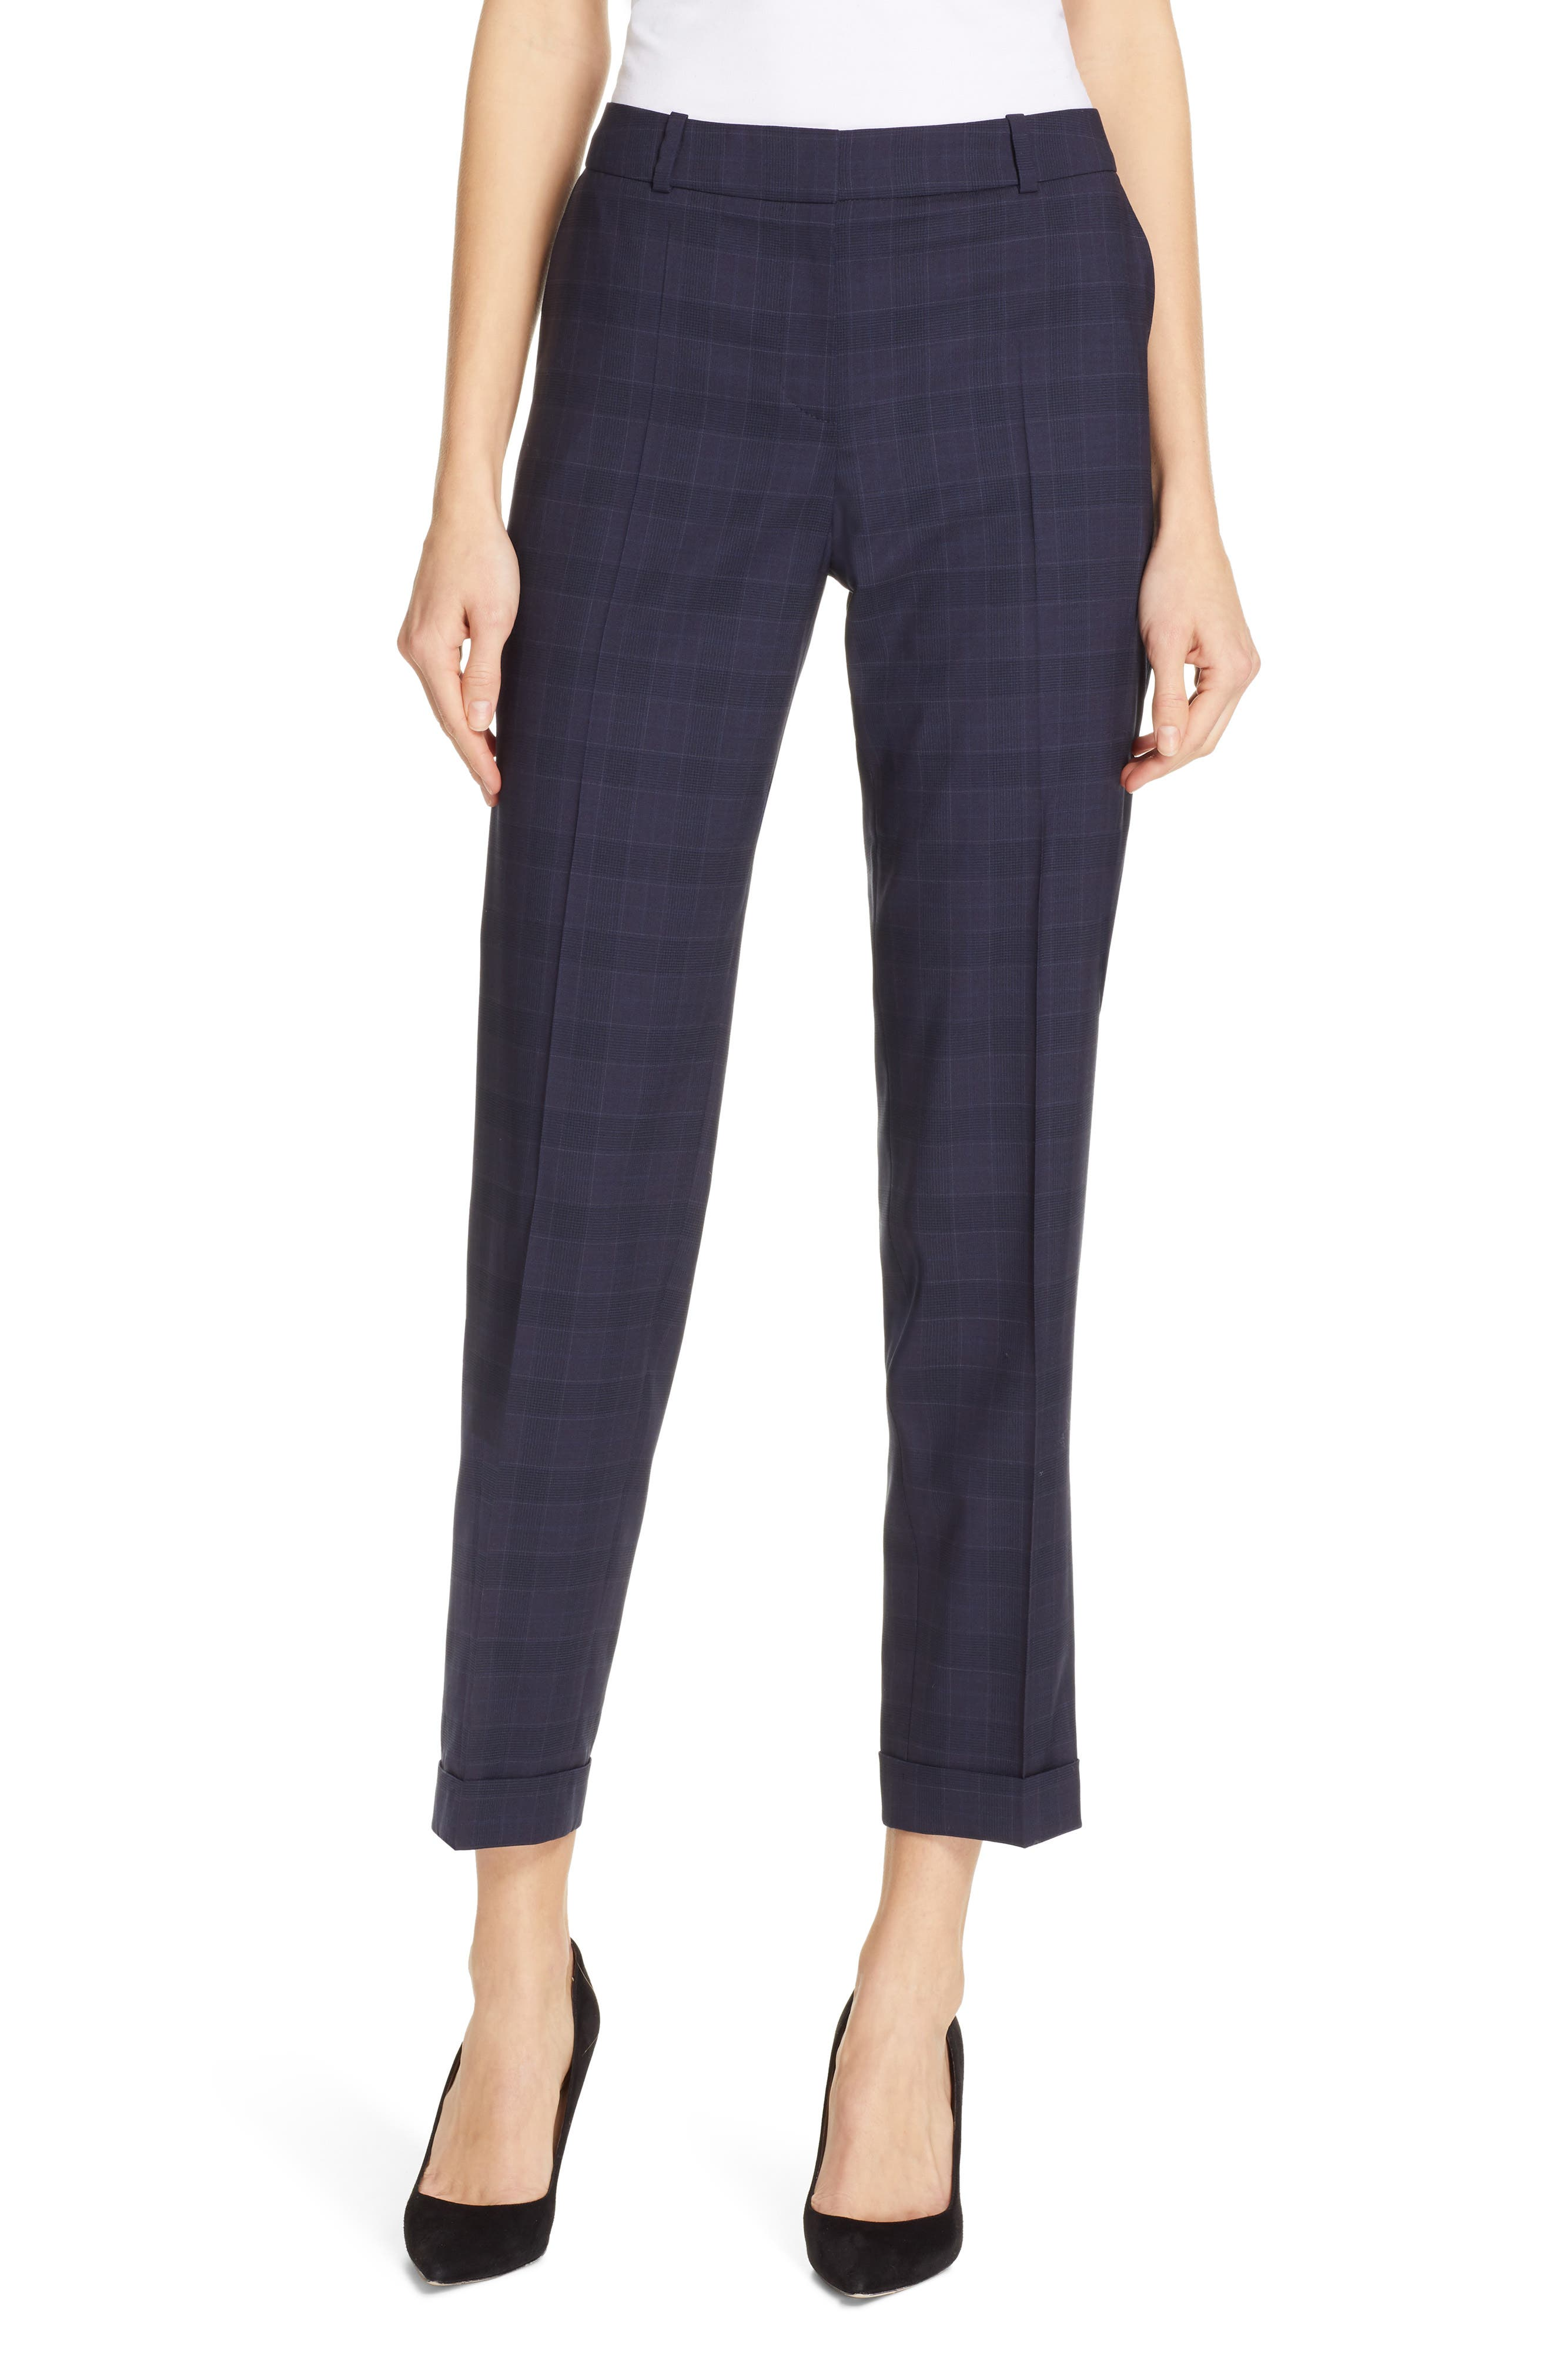 Tocanes Modern Check Wool Ankle Trousers,                         Main,                         color, DARK NAVY FANTASY